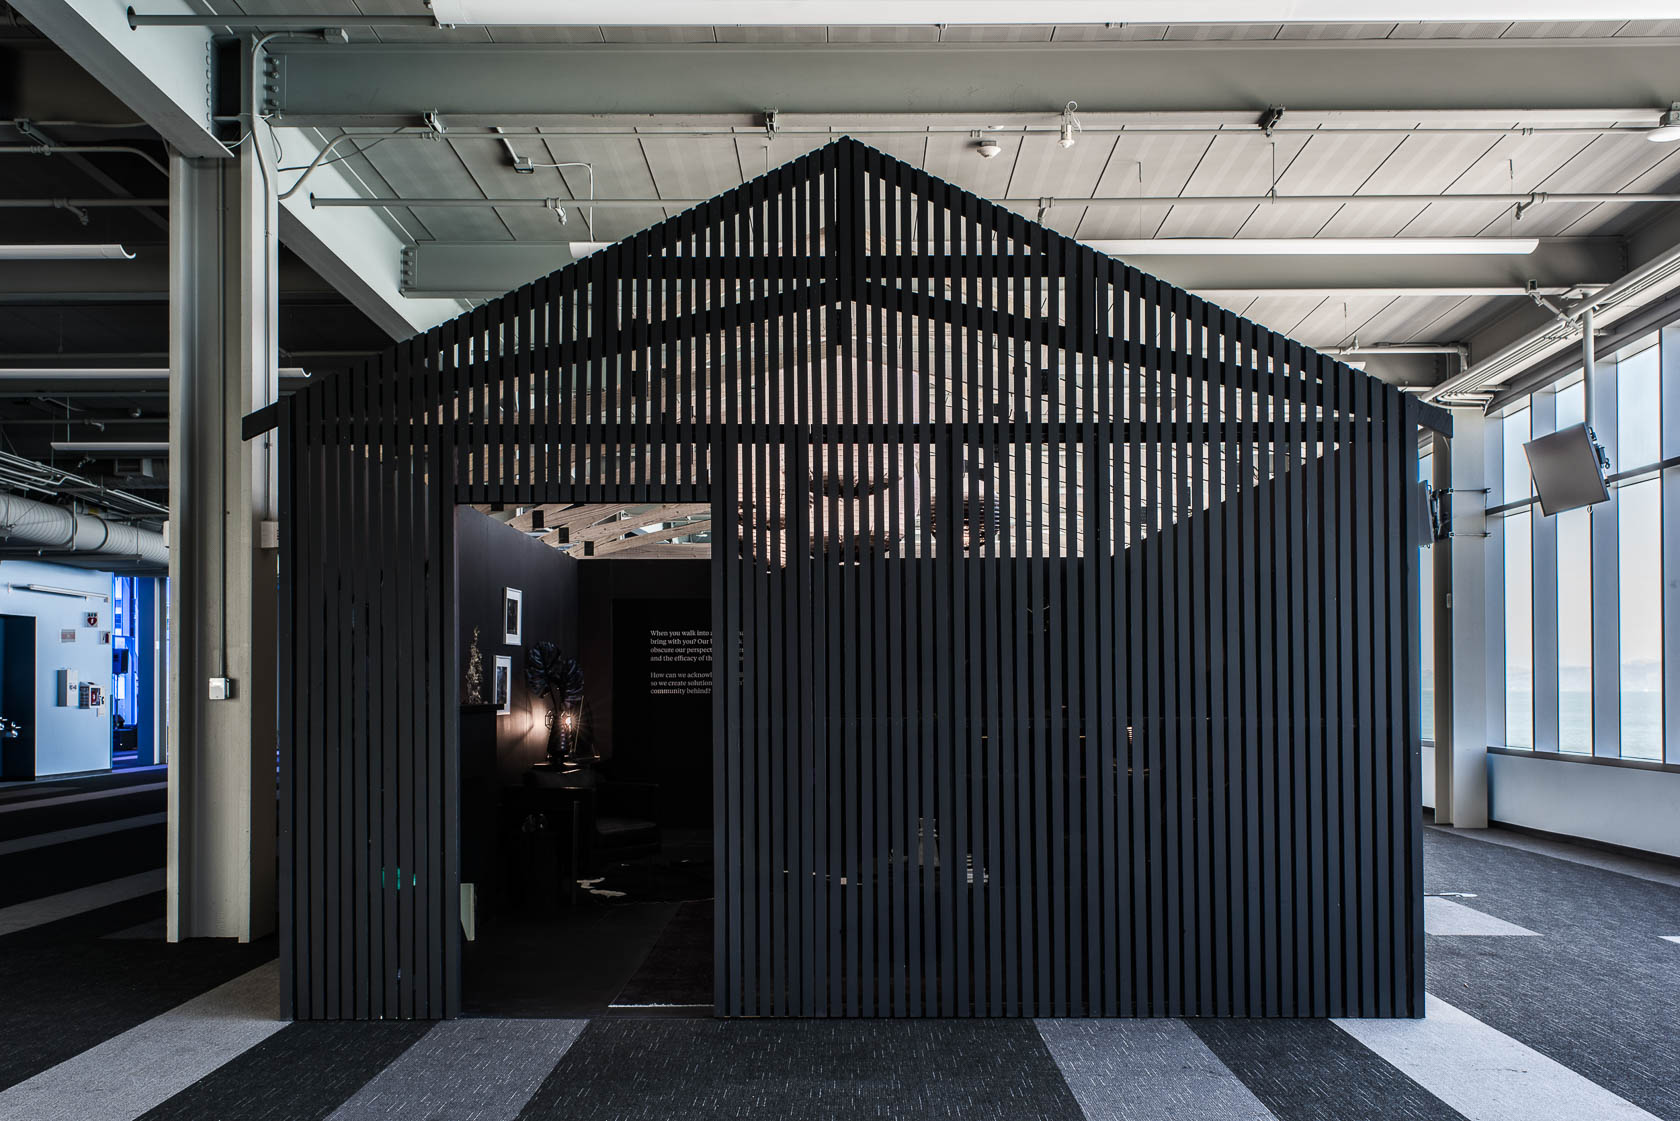 A home-like structure made of black slats, standing in an event space.